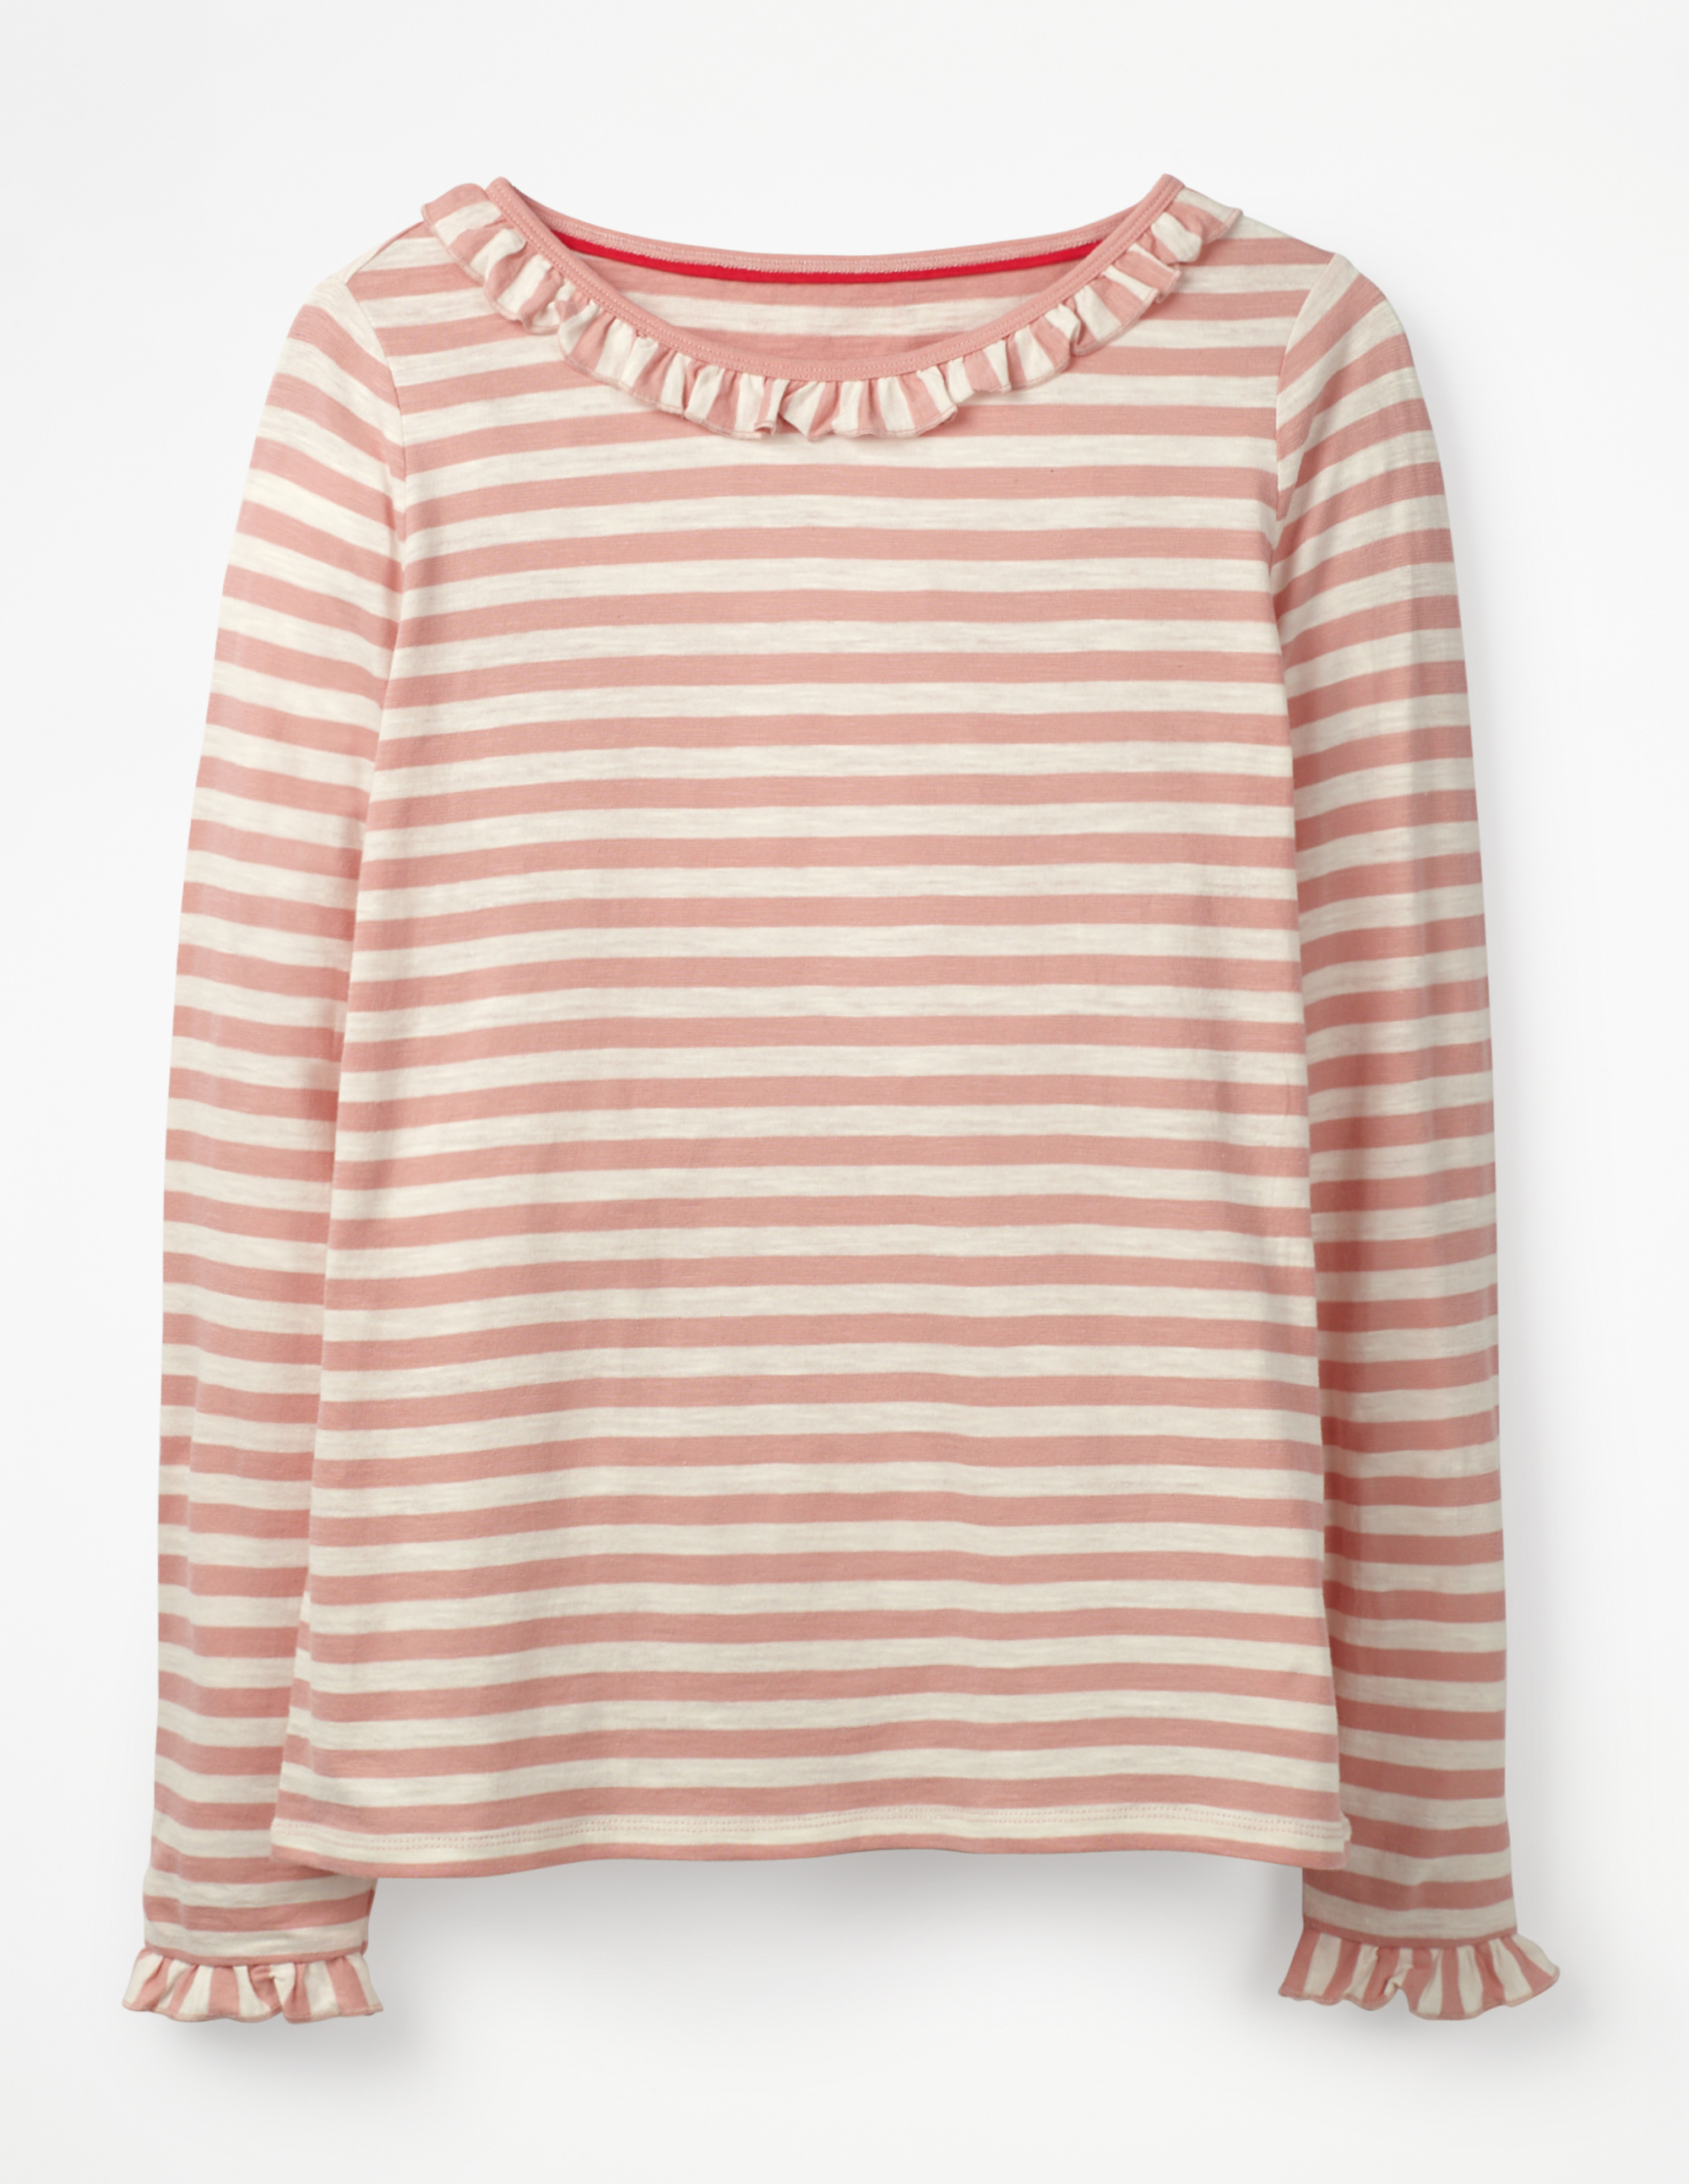 Boden dusky pink stripe top with frill collar and cuffs